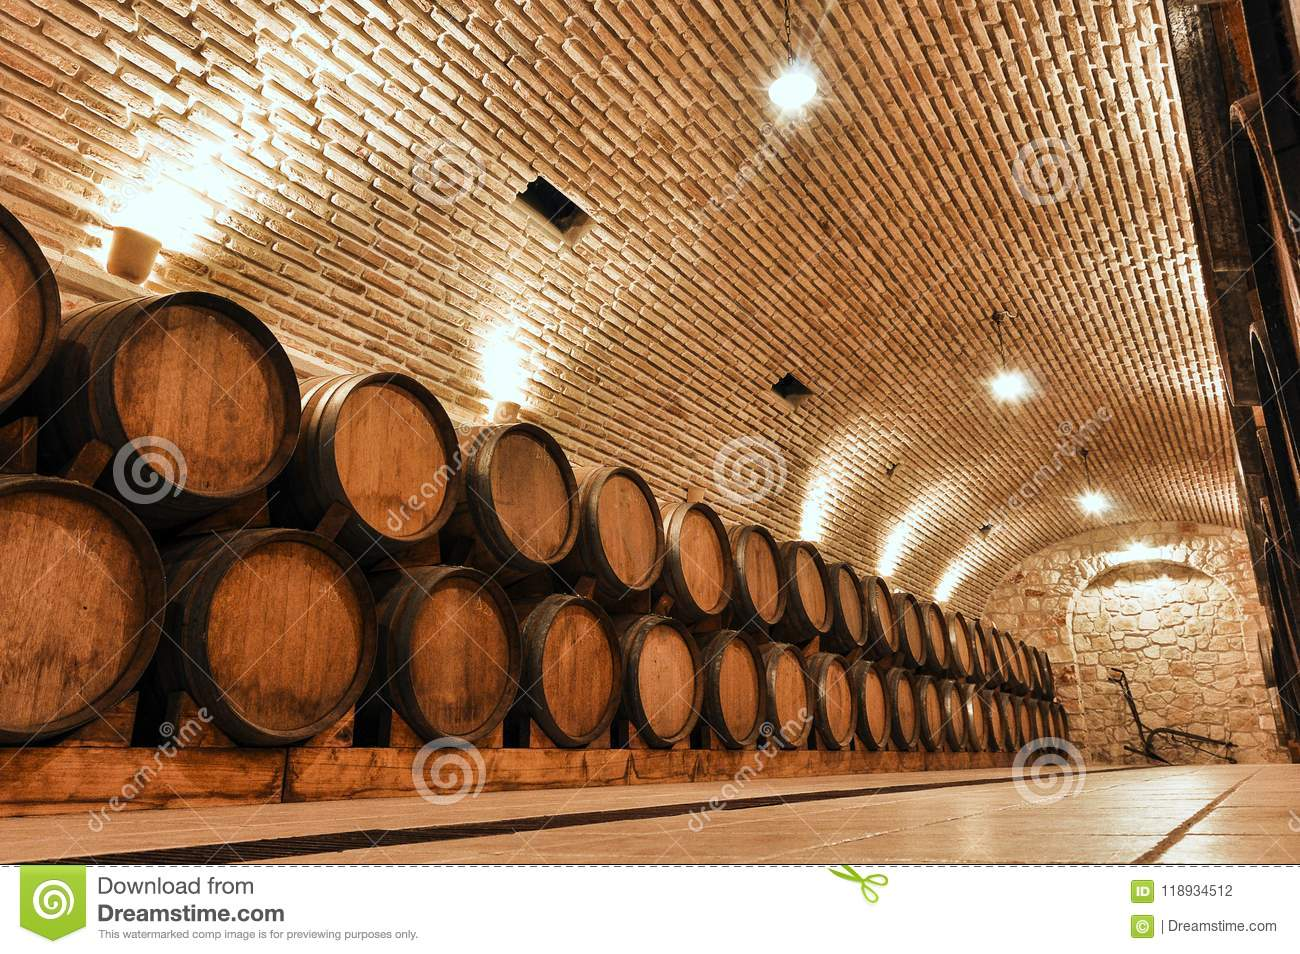 Basement Of A Winery With Wooden Barrels Stock Photo Image Of White Vintage 118934512